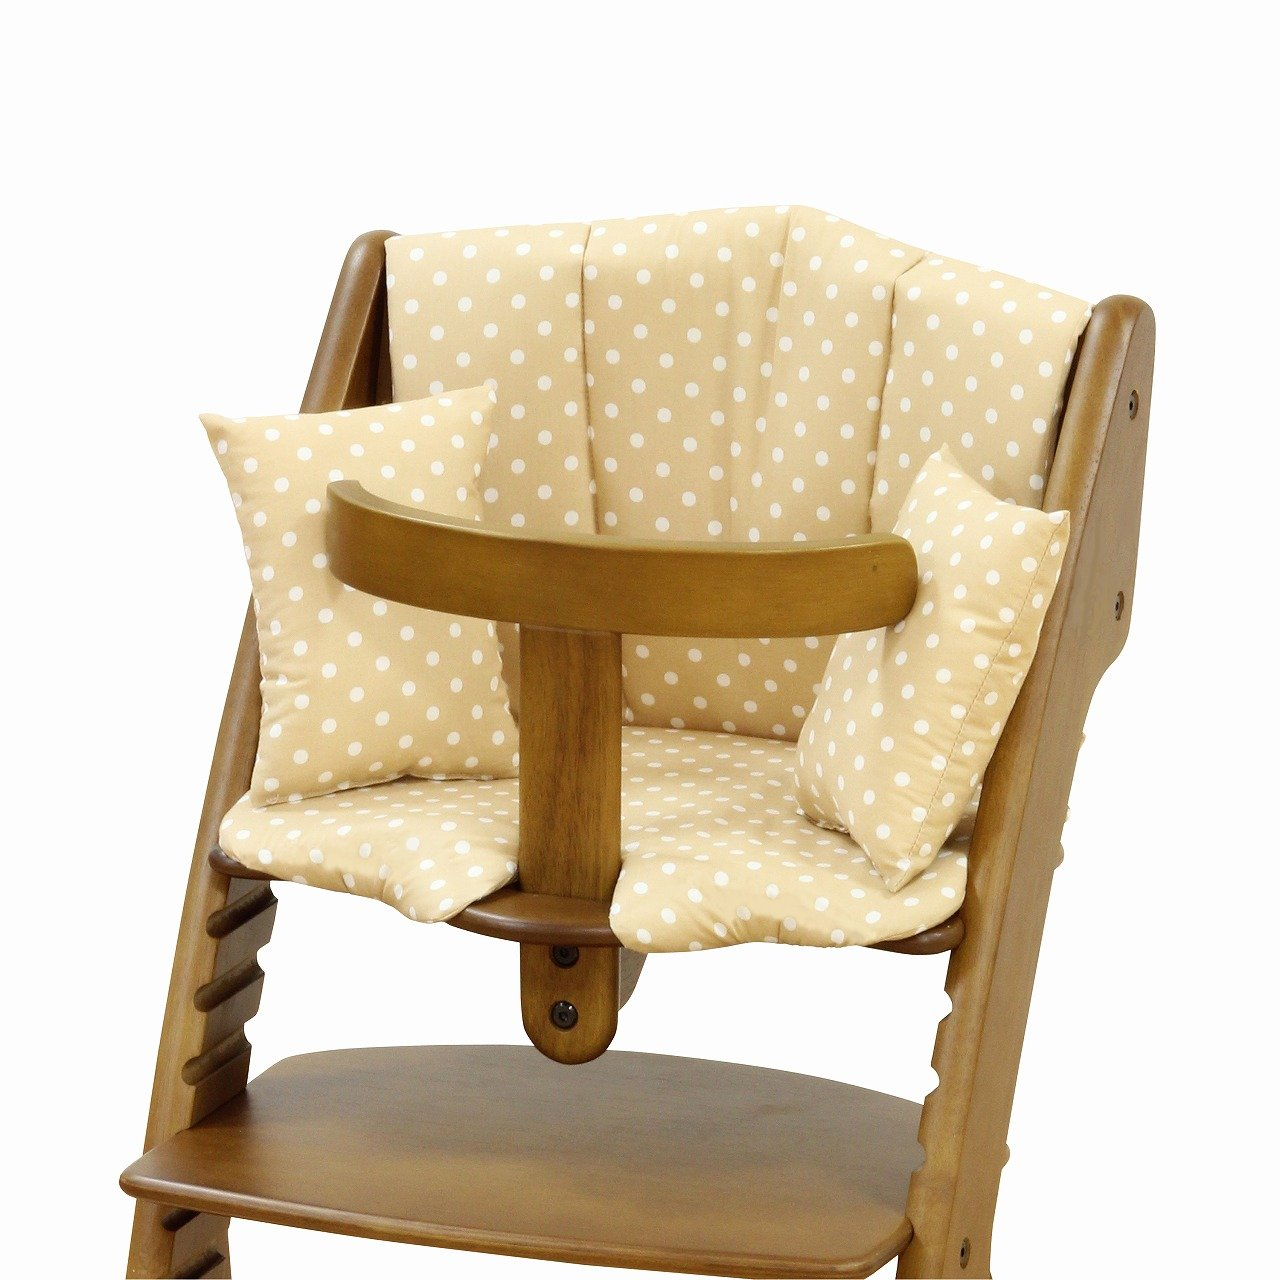 Yamatoya Sukusuku Slim chair dedicated chair cushion beige